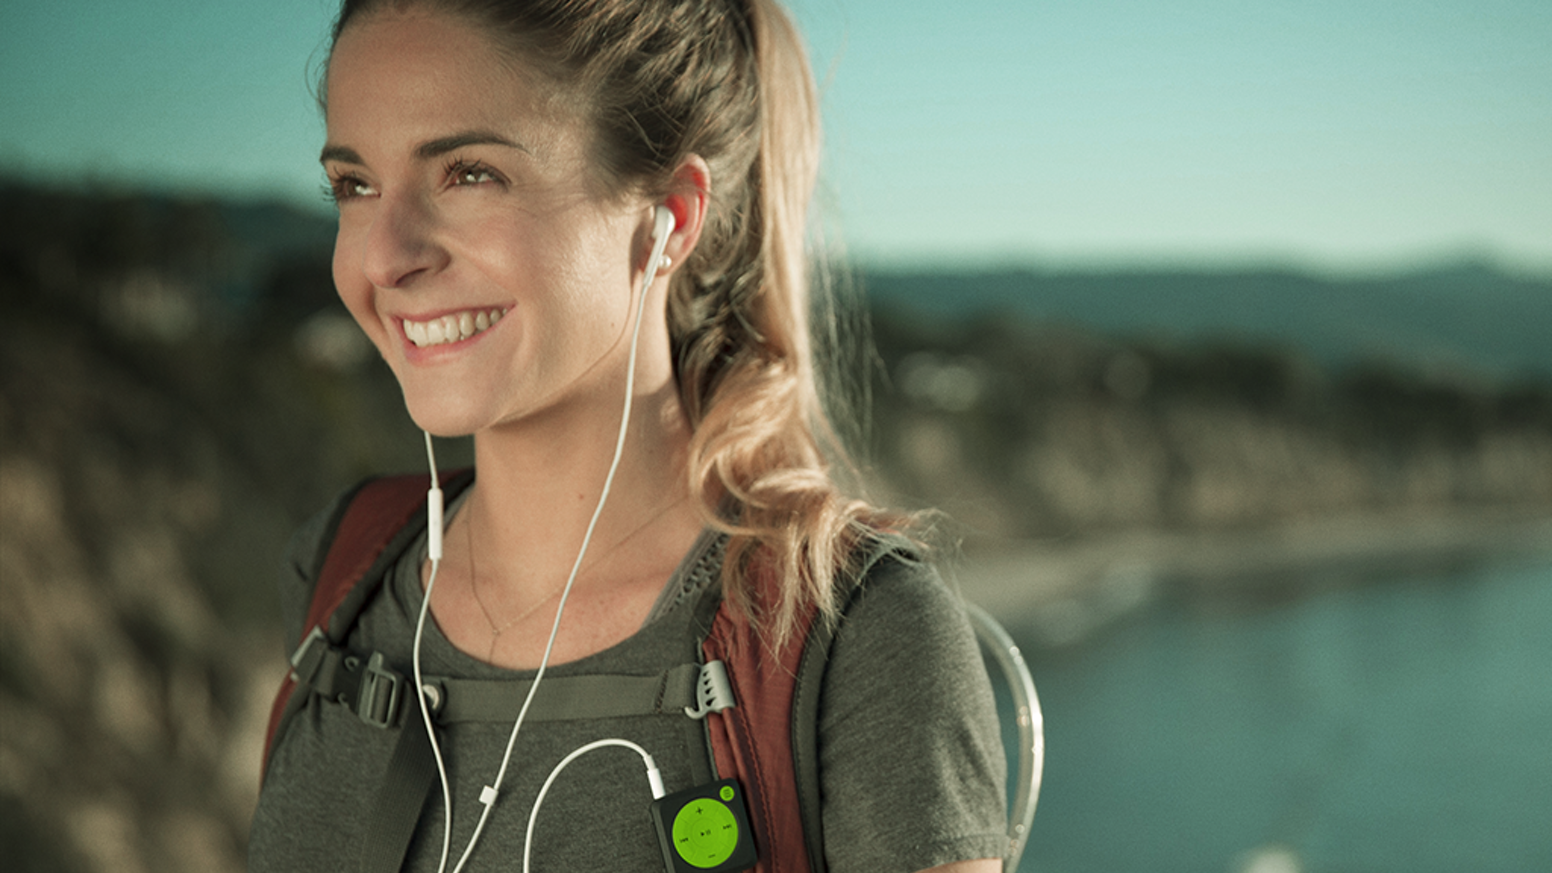 Mighty is the first device to play your Spotify music on-the-go without a phone. Finally.